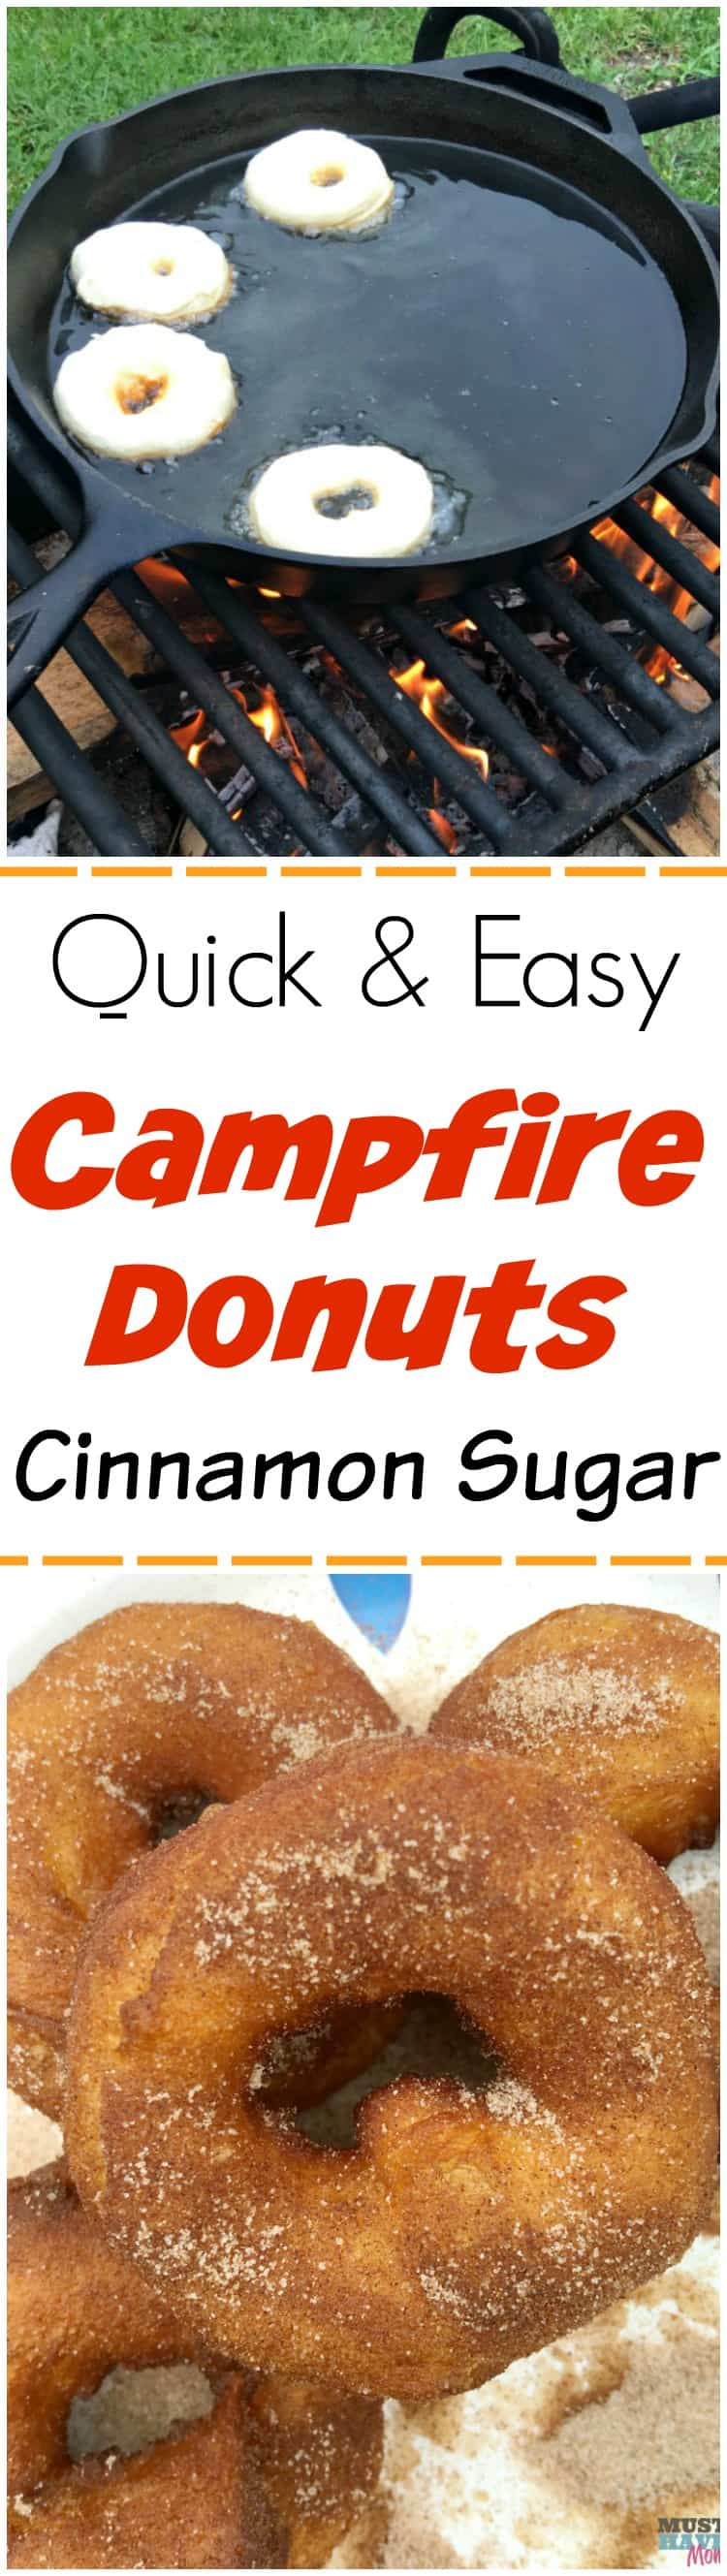 These Campfire Donuts Are Our Kids Favorite Of All Camping Recipes